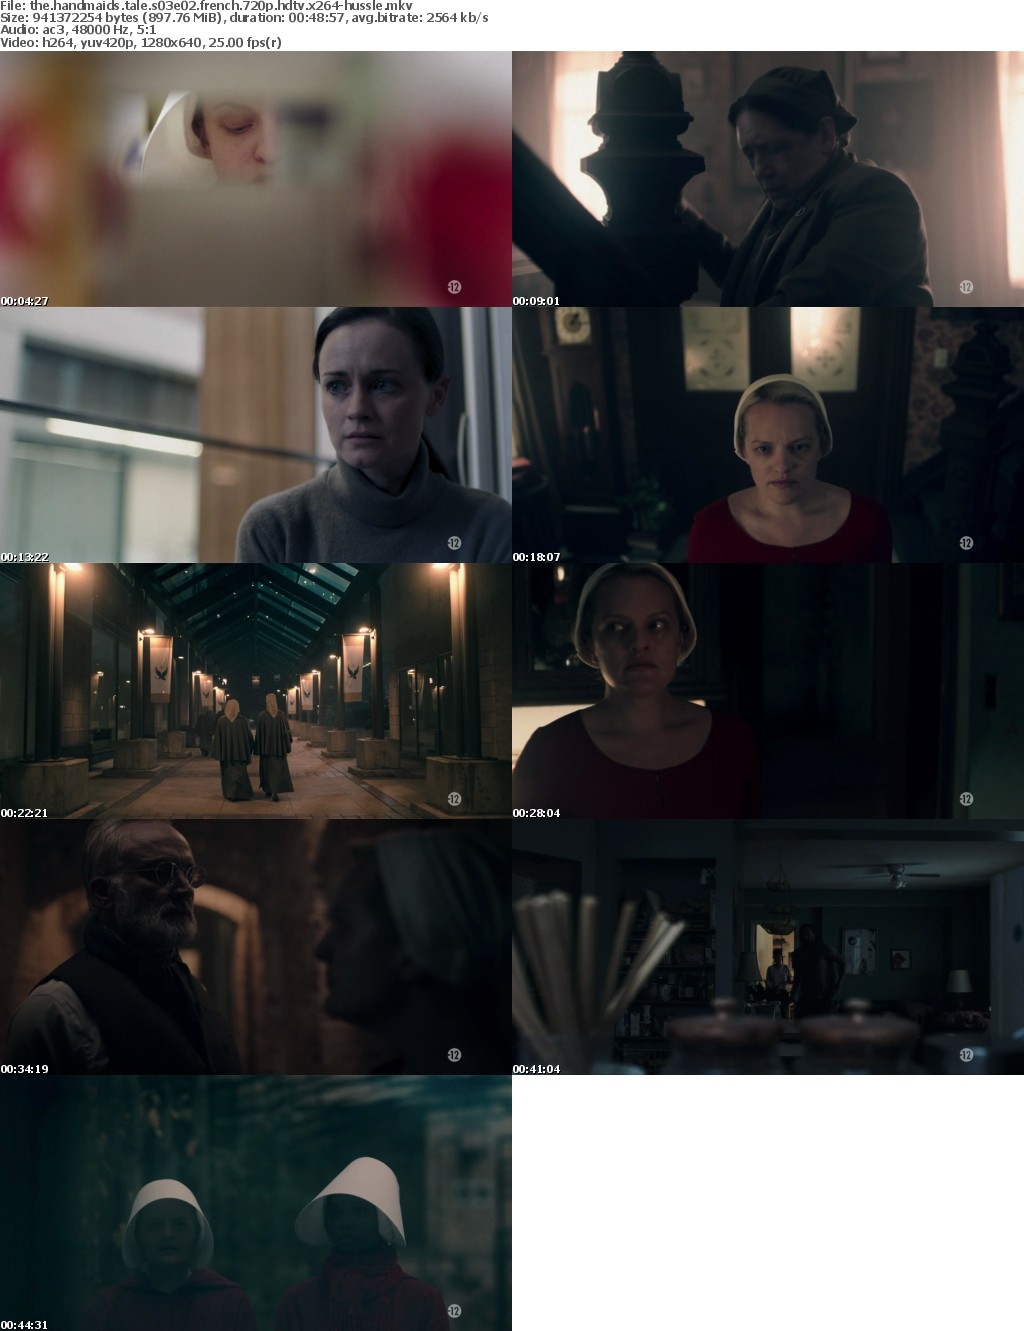 The Handmaids Tale S03E02 FRENCH 720p HDTV x264-HuSSLe